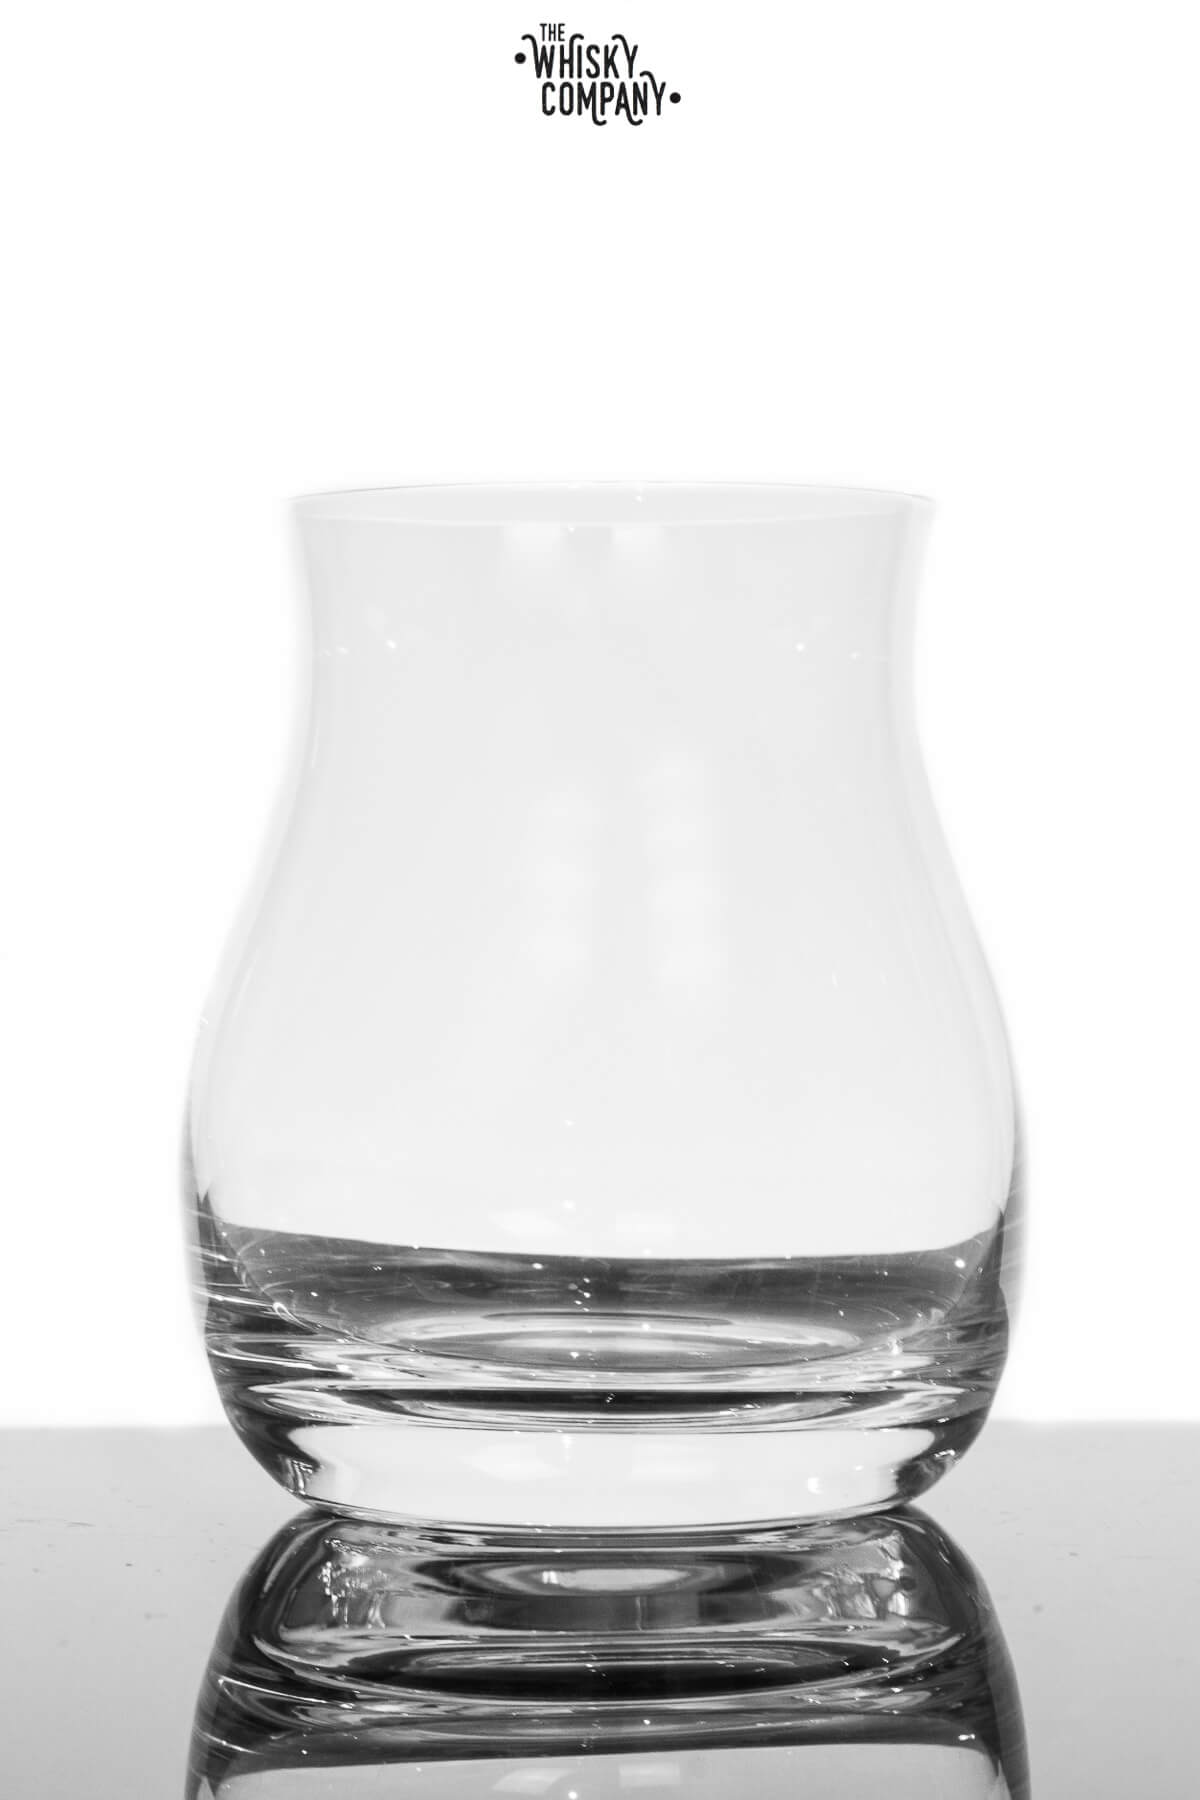 Glencairn Crystal Mixer Glass (Qty 6)